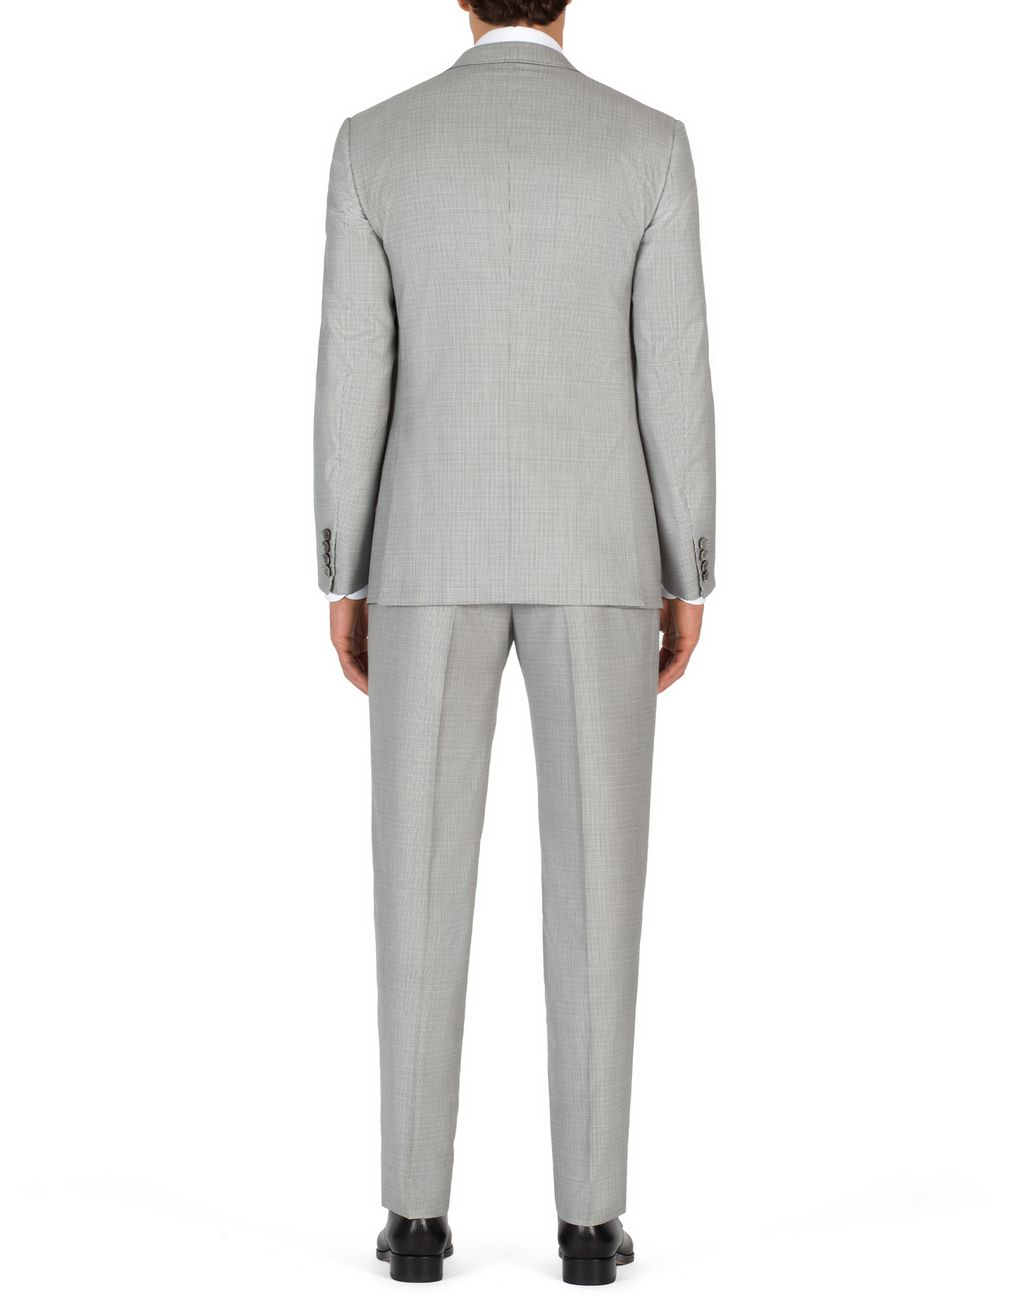 BRIONI White and Gray Micro Houndstooth Brunico Suit  Suits & Jackets Man d